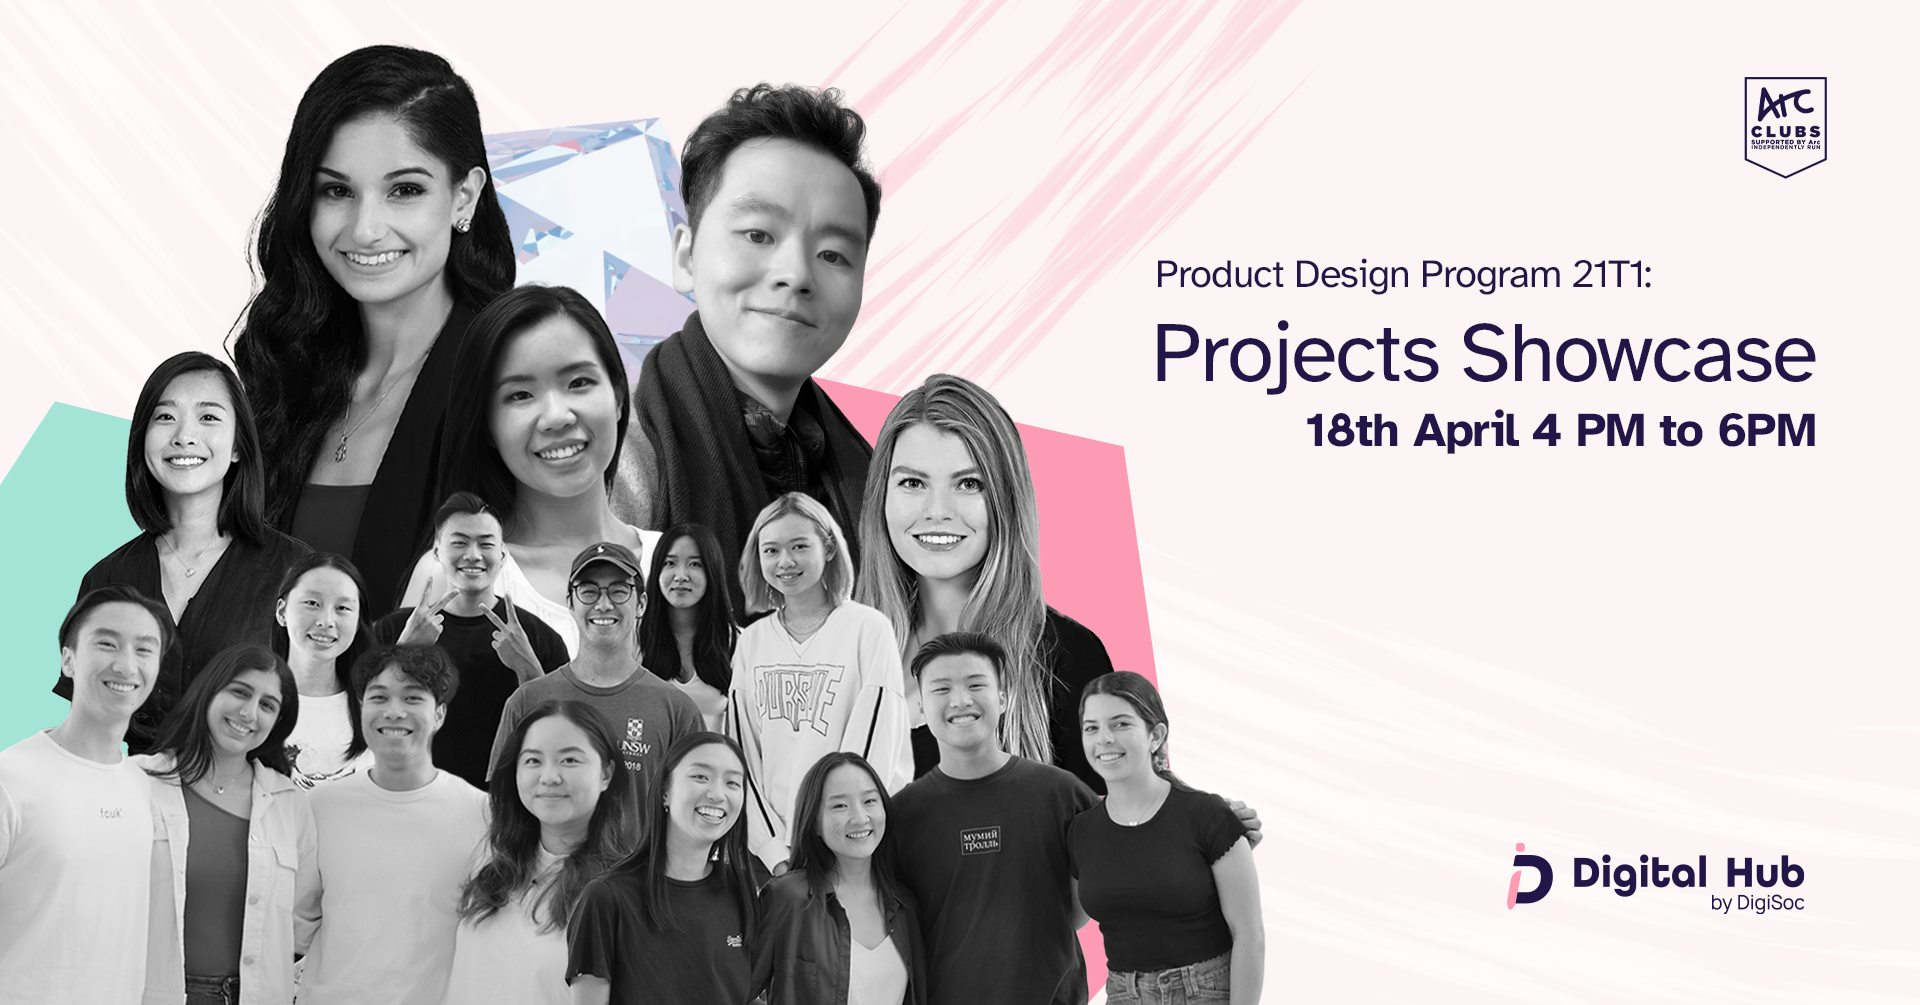 Product Design Program 21T1: Projects Showcase